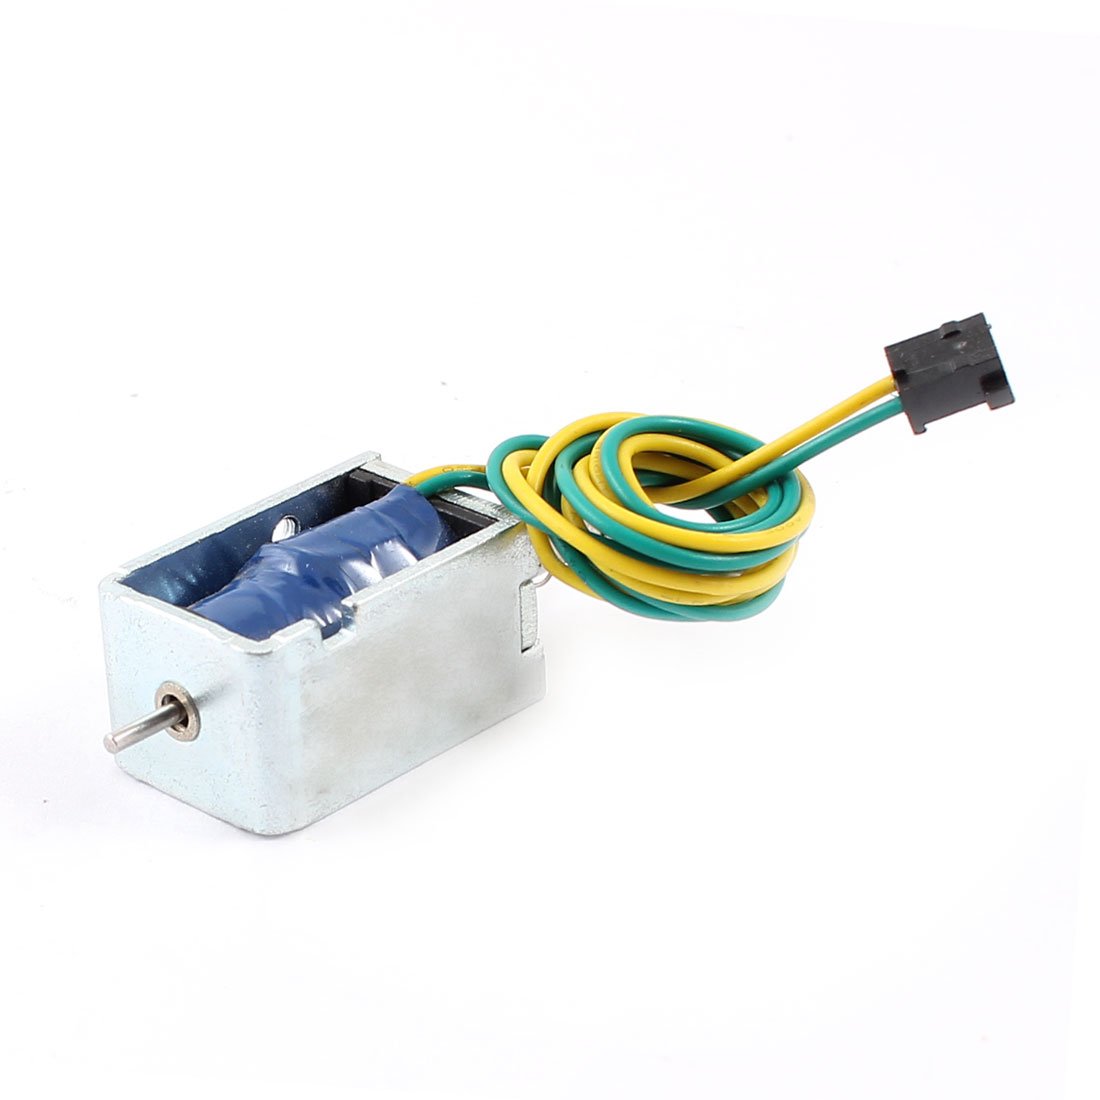 цена на UXCELL 5Mm/85G 7.99W Power Wired Open Frame Push Pull Type Solenoid Electromagnet 12V 0.66A